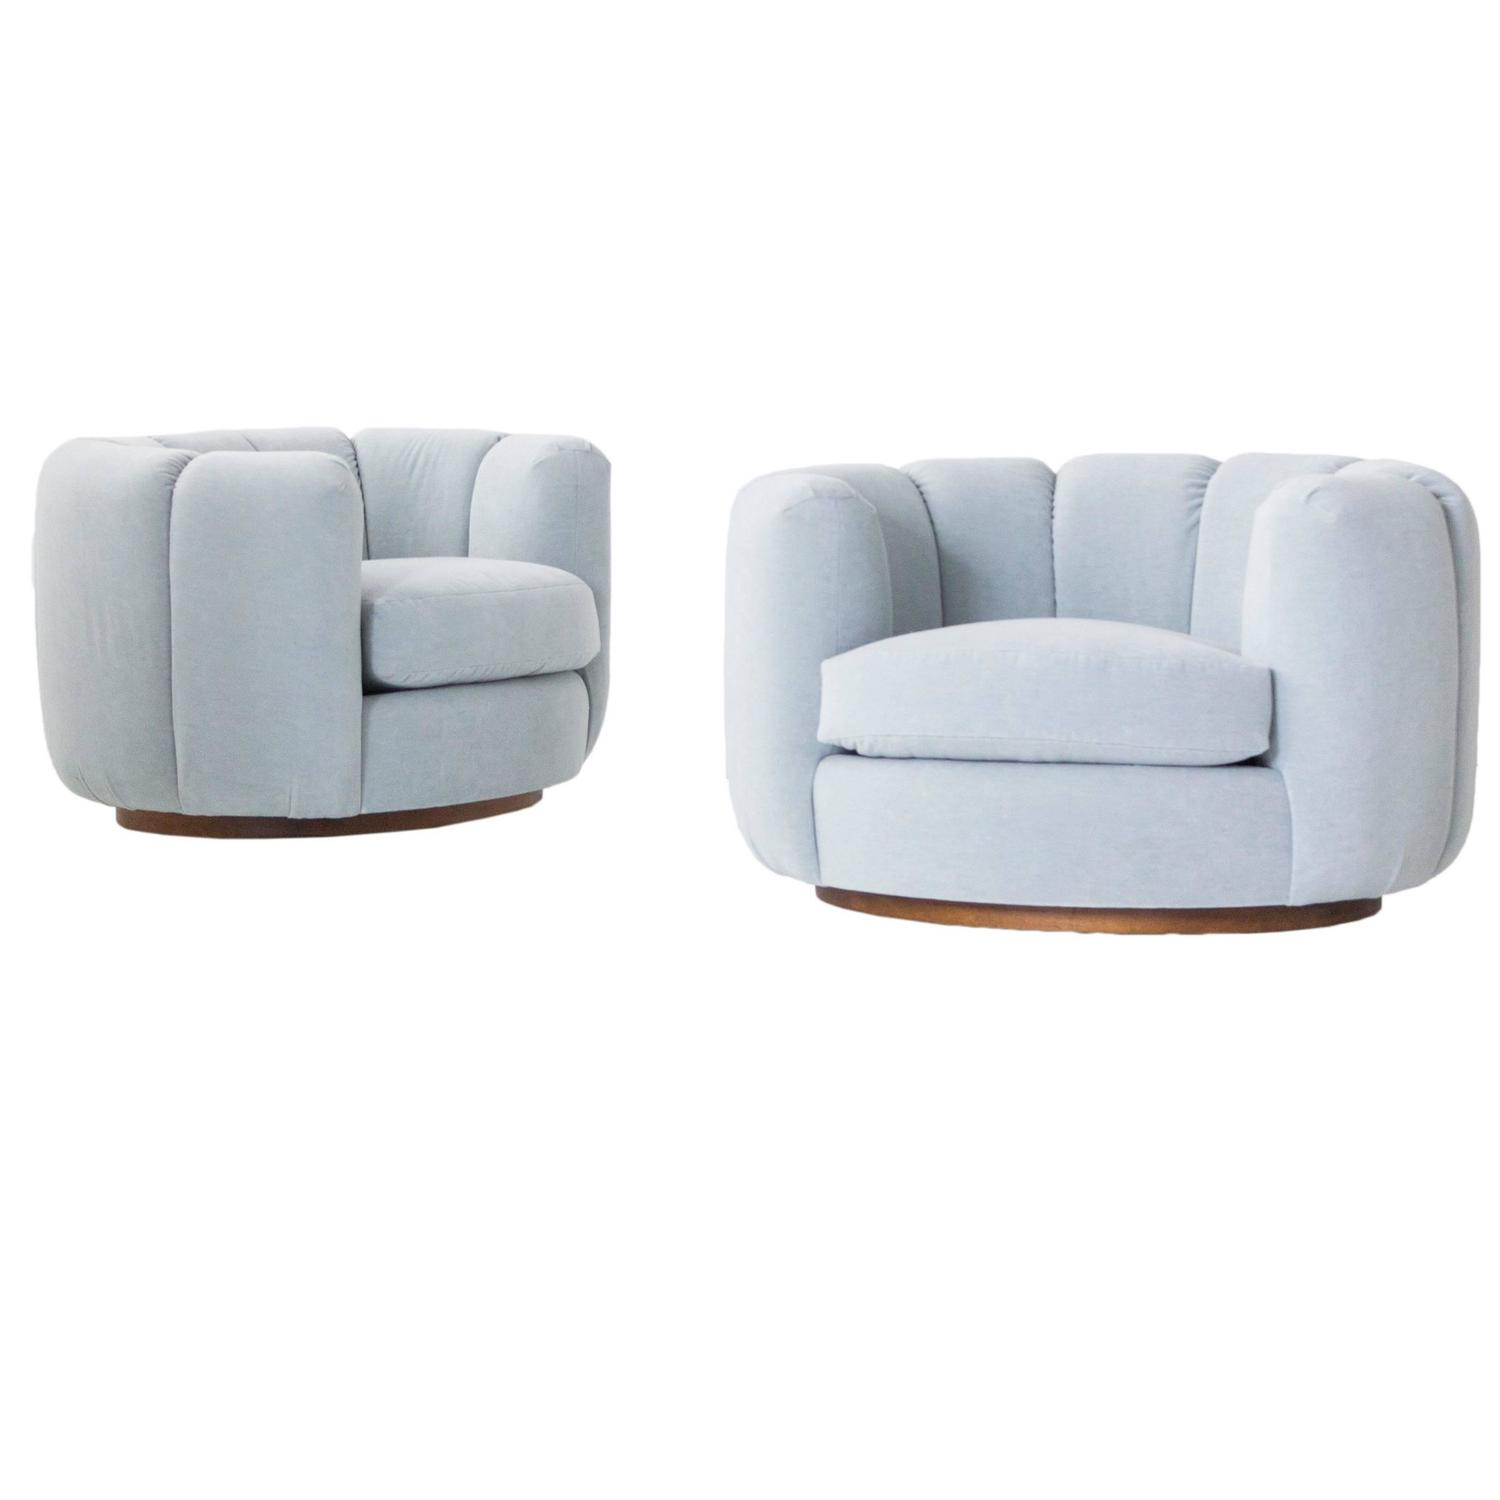 Oversized round swivel lounge chair mid century modern at 1stdibs - Milo Baughman Channel Back Lounge Chairs